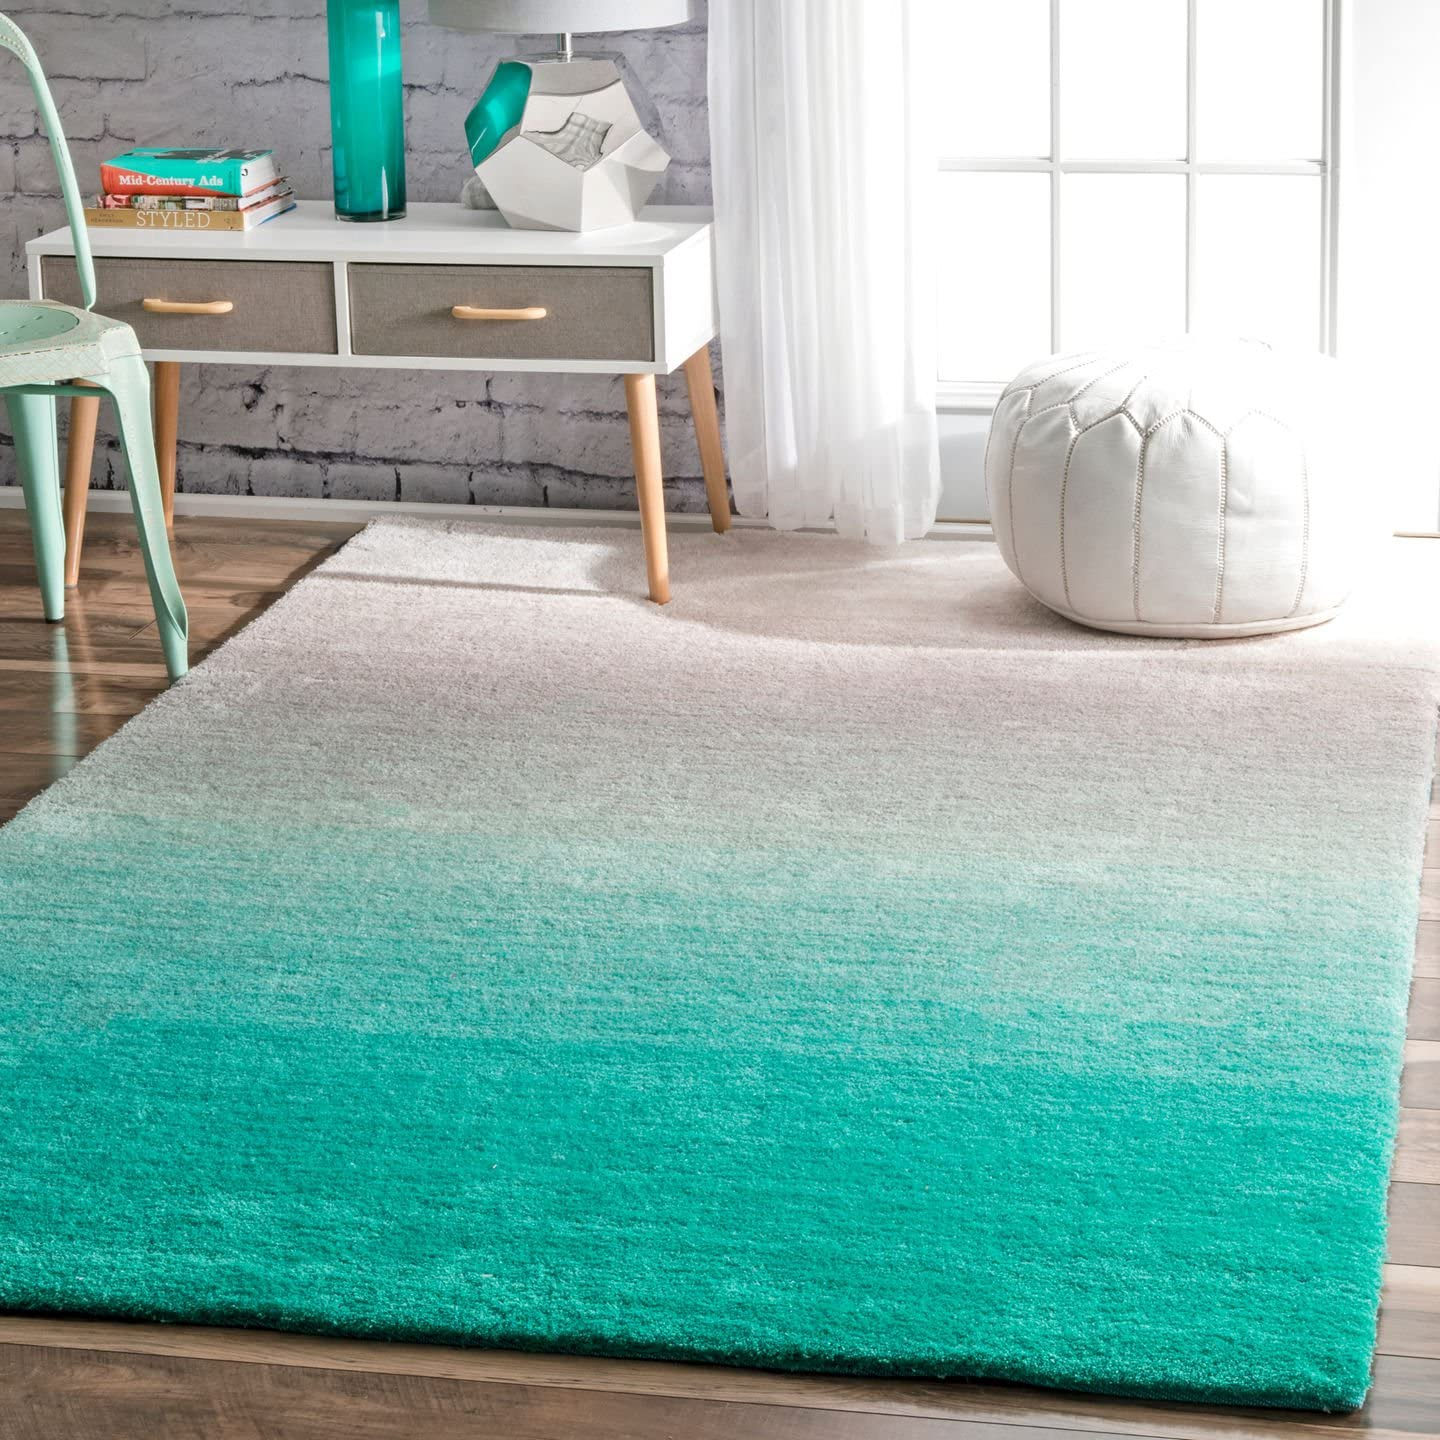 nuLOOM Ariel Ombre Shag Rug, 8 x 10 , Turquoise